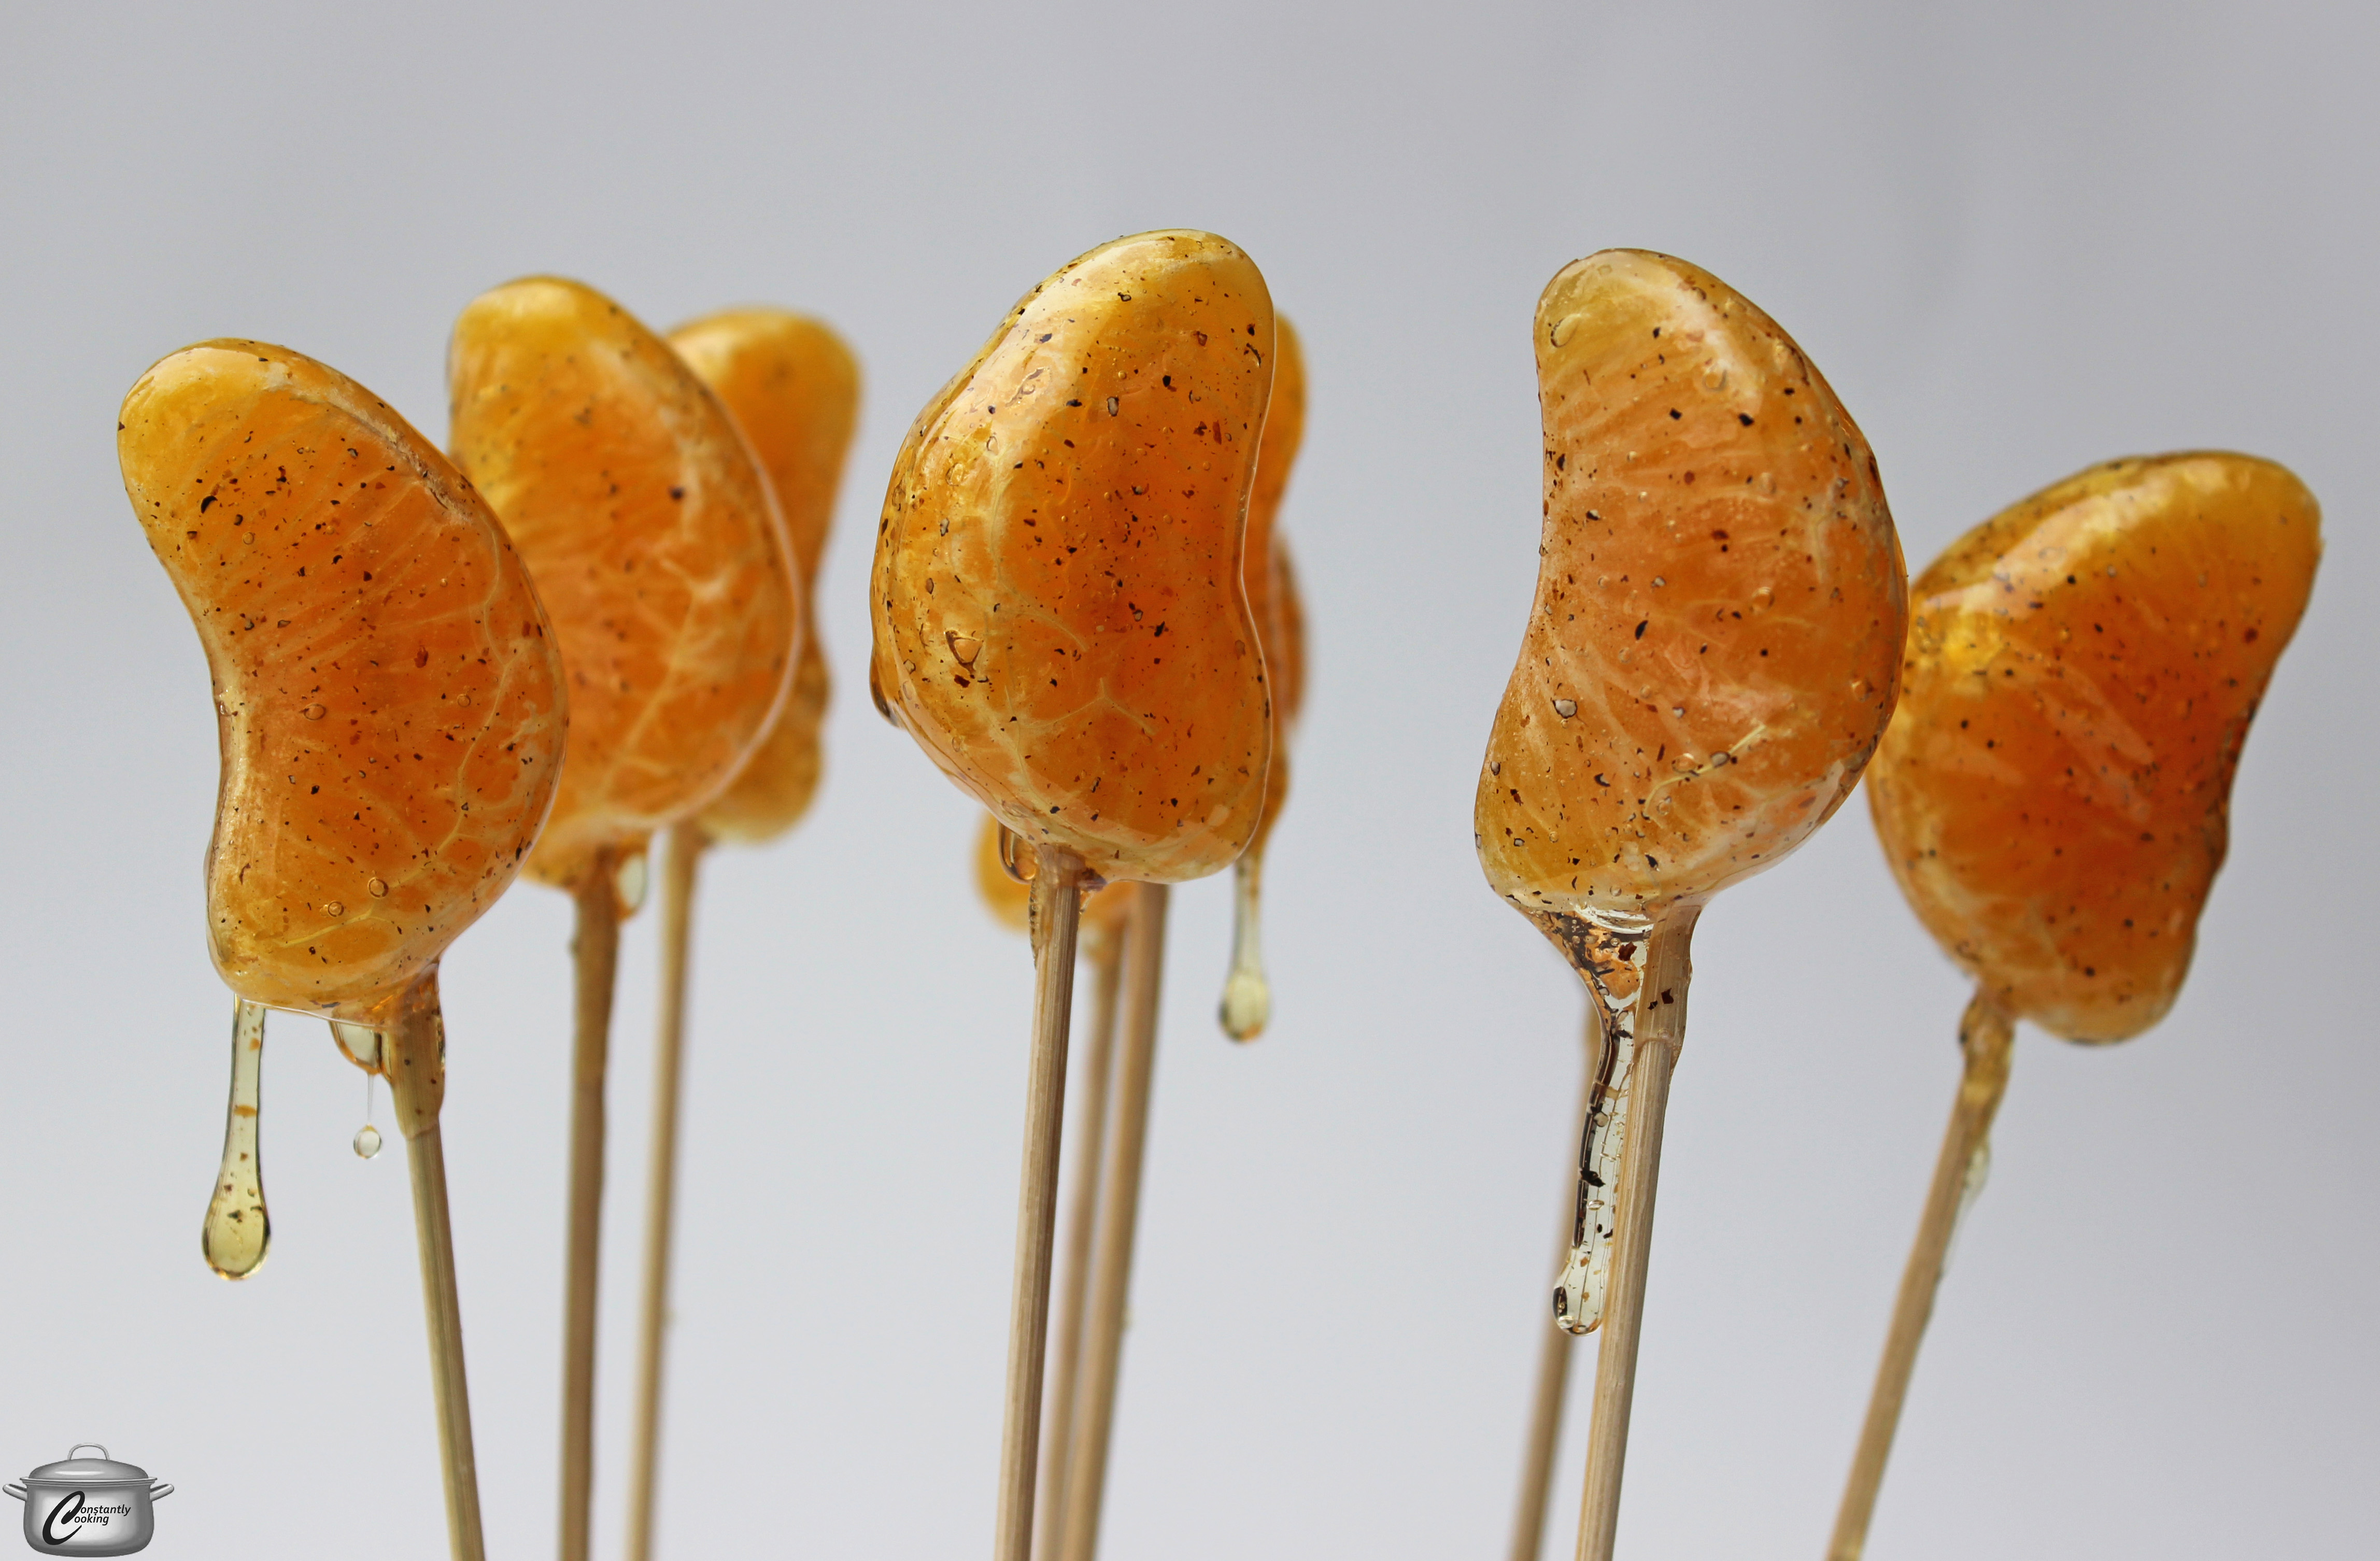 Candy-coated fresh fruit lollipops | Constantly Cooking